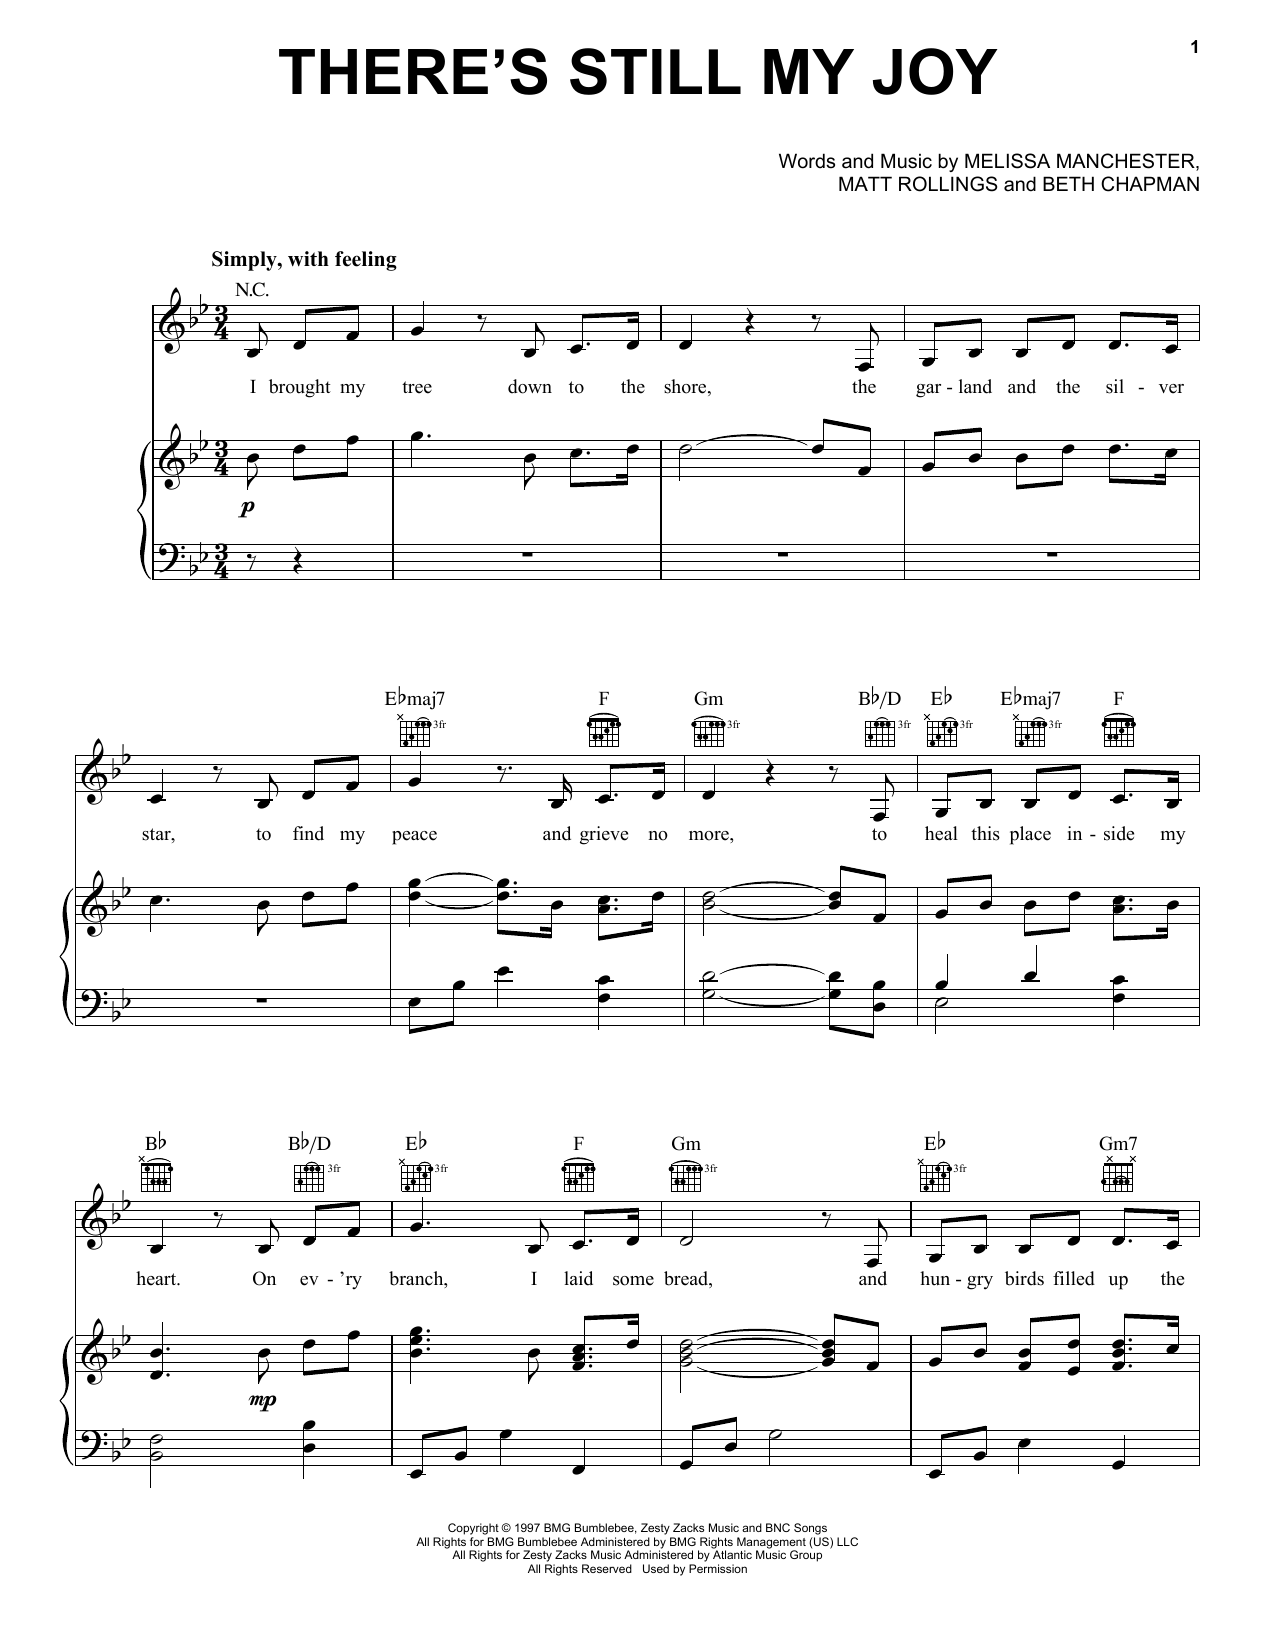 Indigo Girls There's Still My Joy sheet music notes and chords. Download Printable PDF.